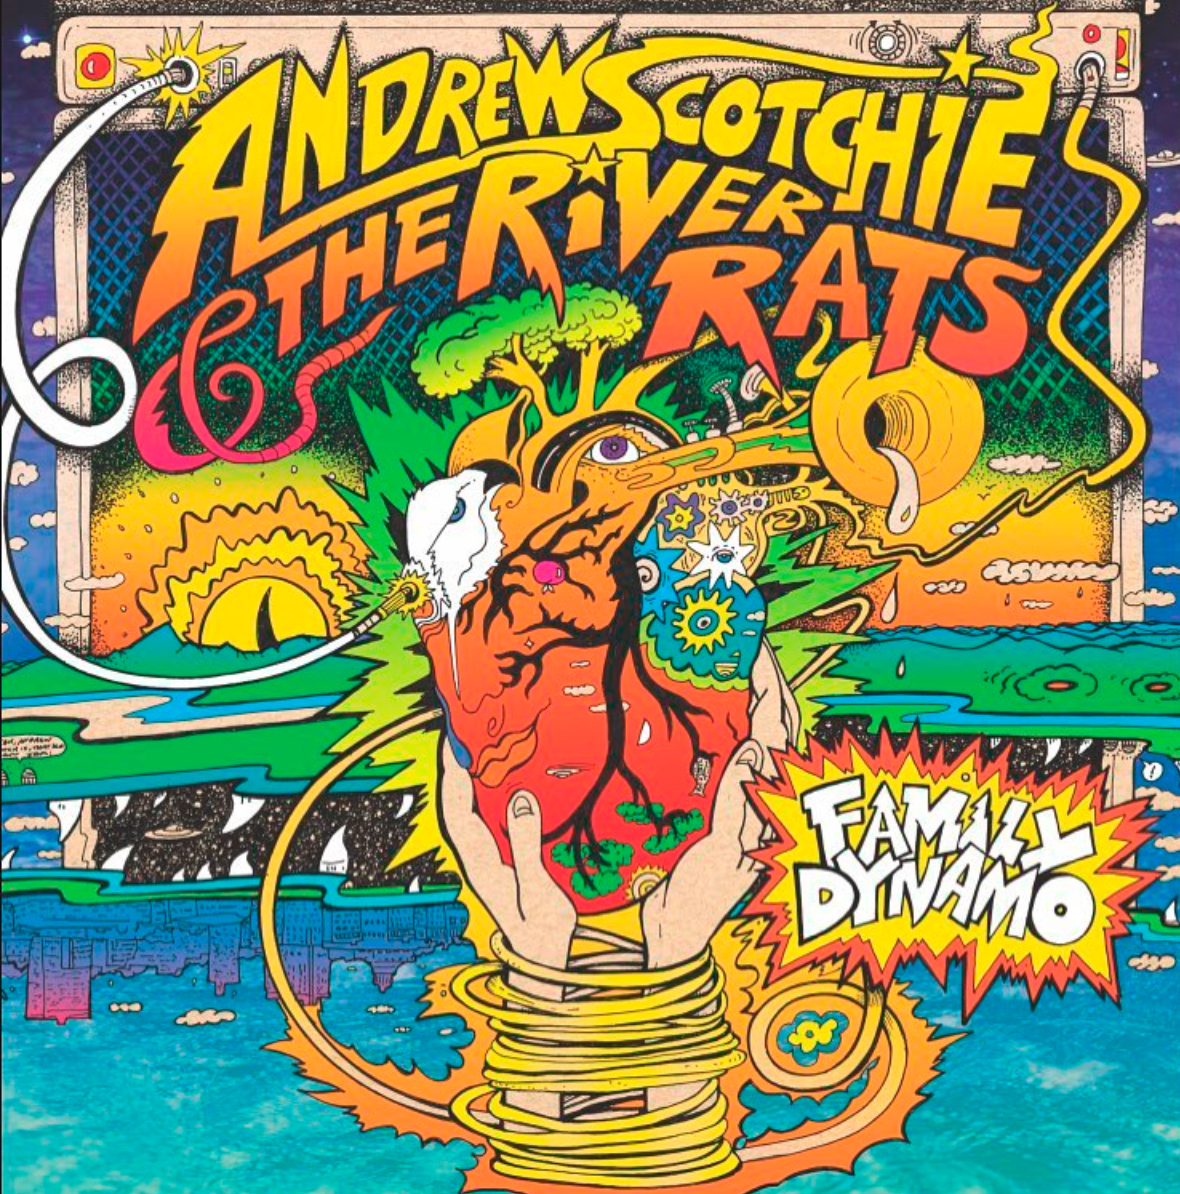 Family Dynamo - Andrew Scotchie & the River Rats